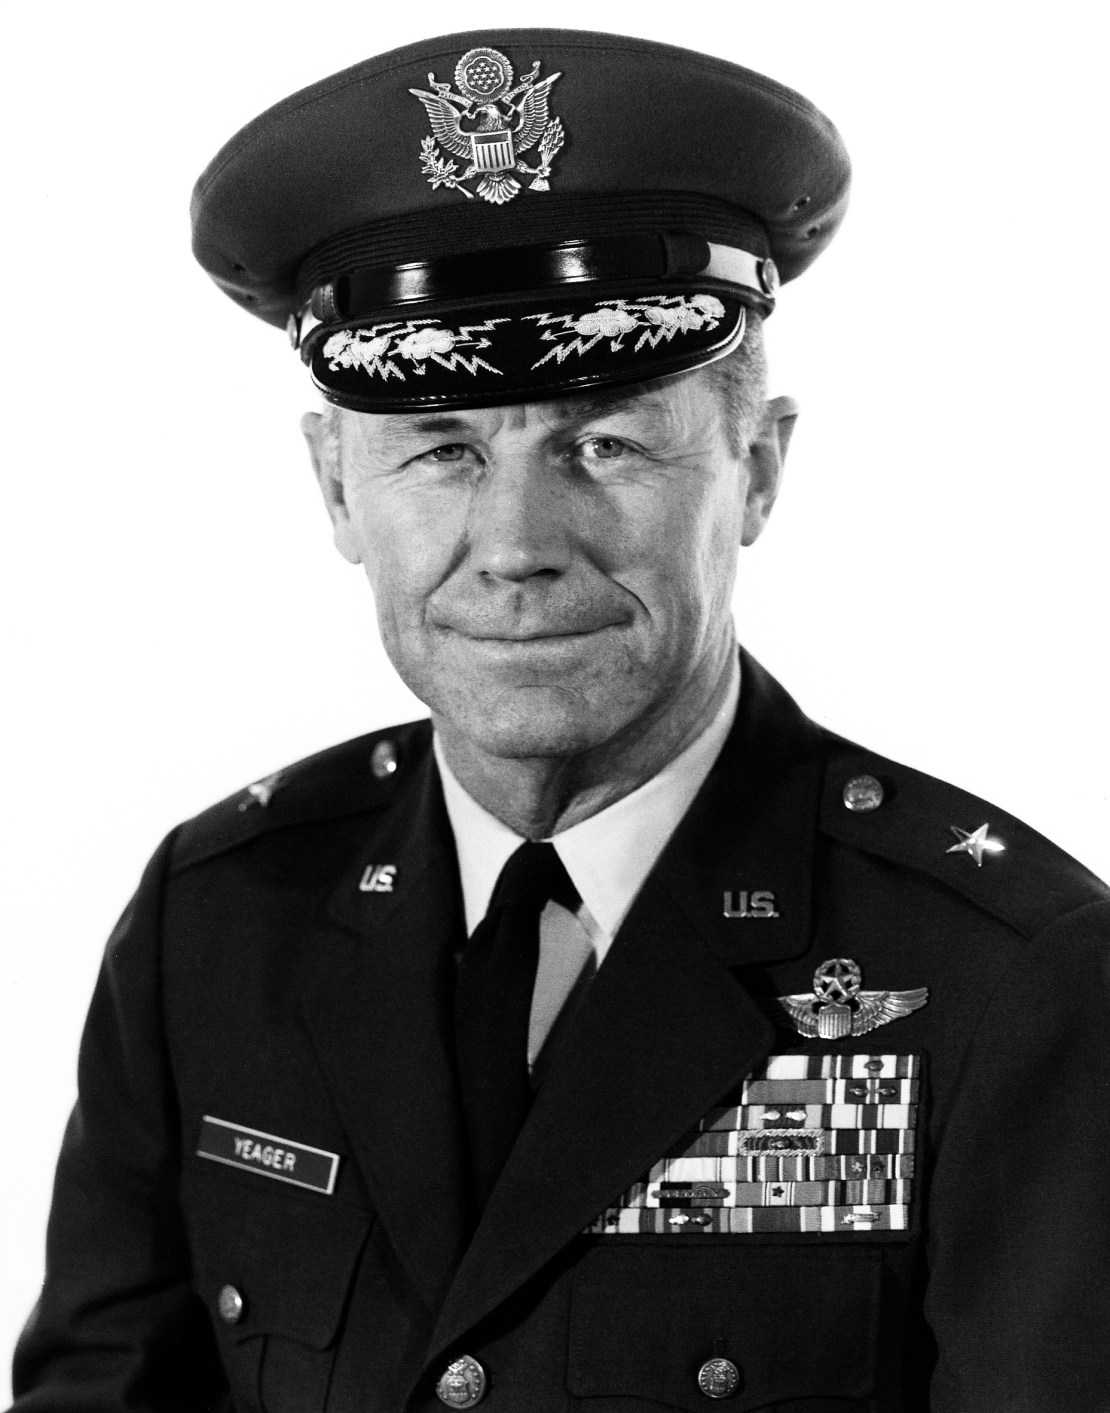 Brigadier General Chuck Yeager, in uniform